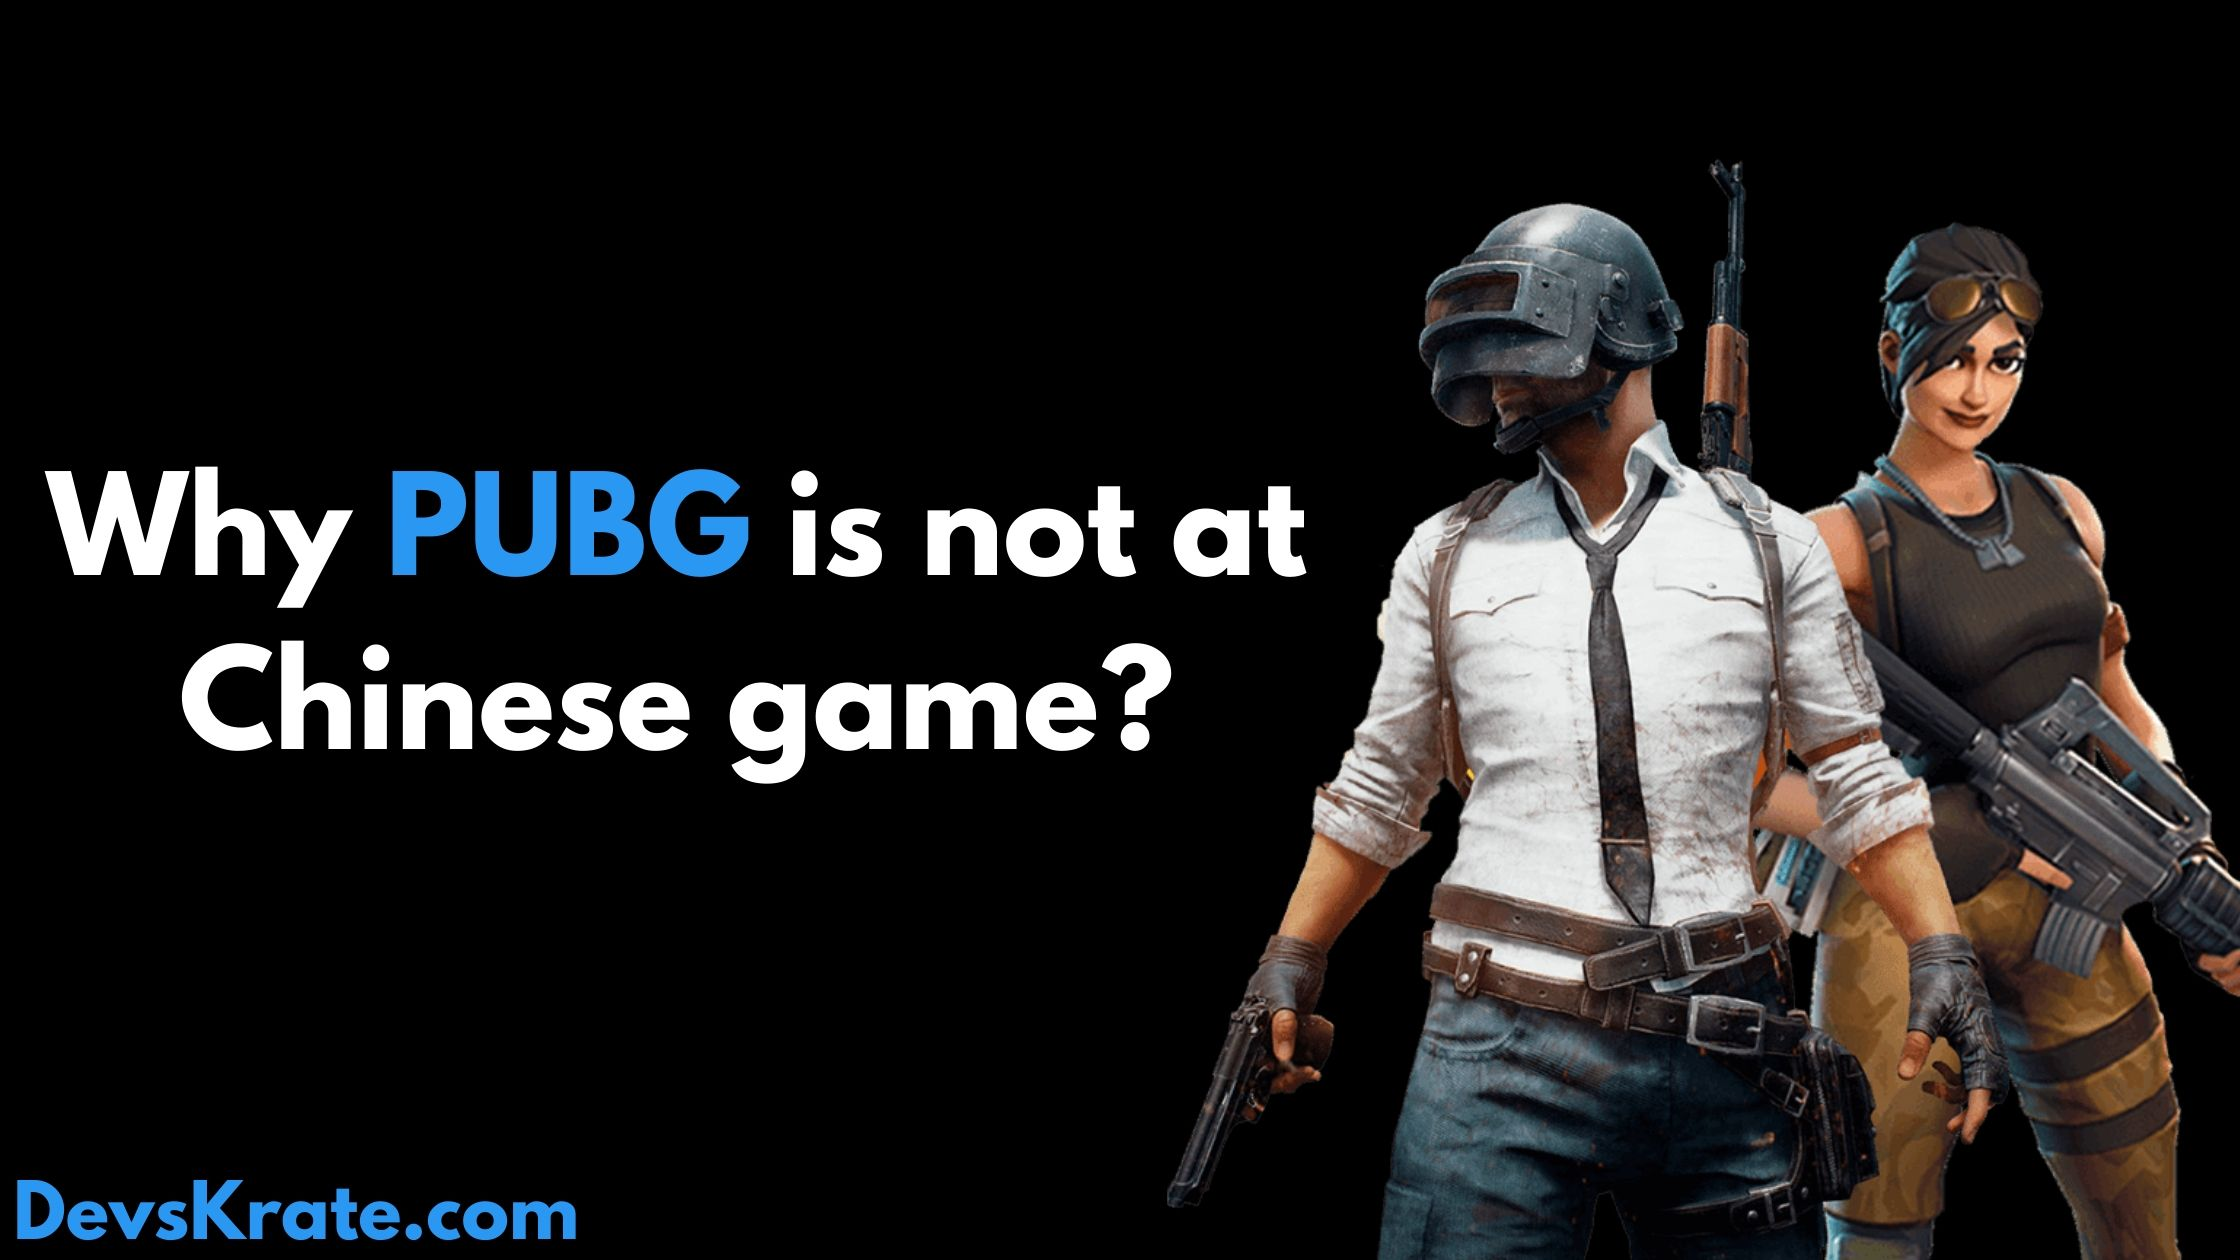 Is PUBG a chinese game?? Let's find out